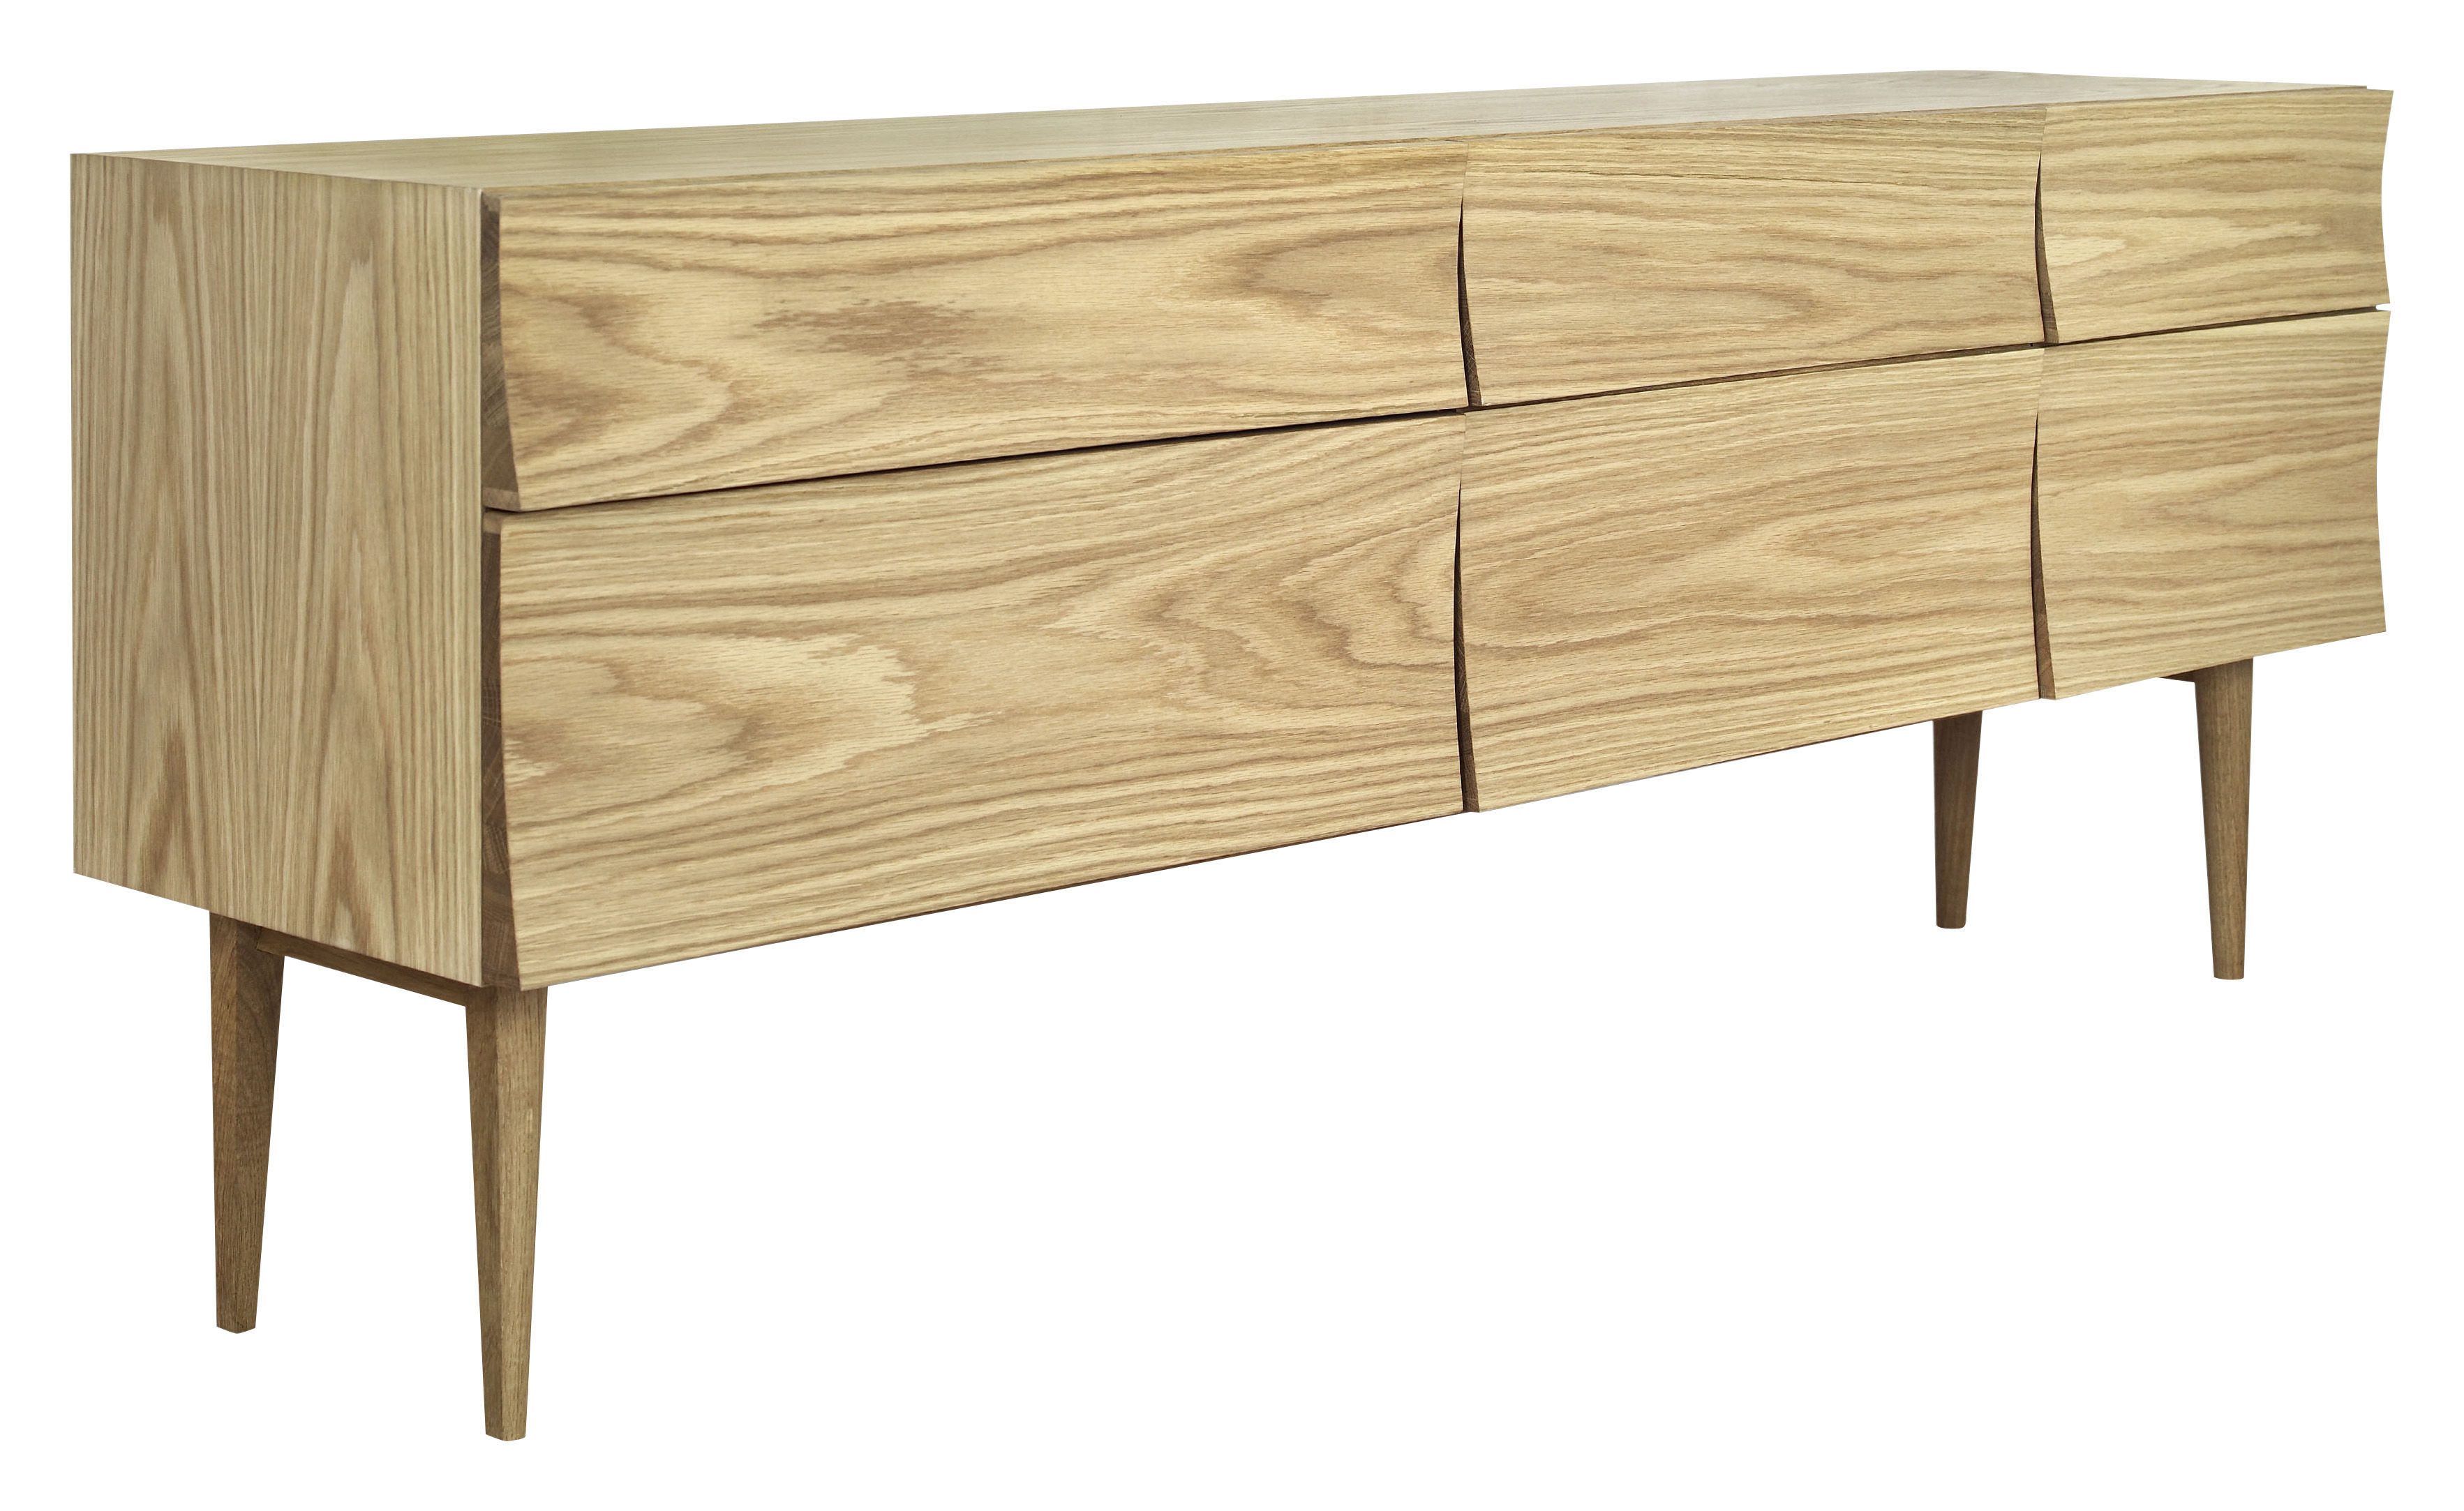 Furniture - Dressers & Storage Units - Reflect Large Dresser - Sideboard by Muuto - Oak - Oak